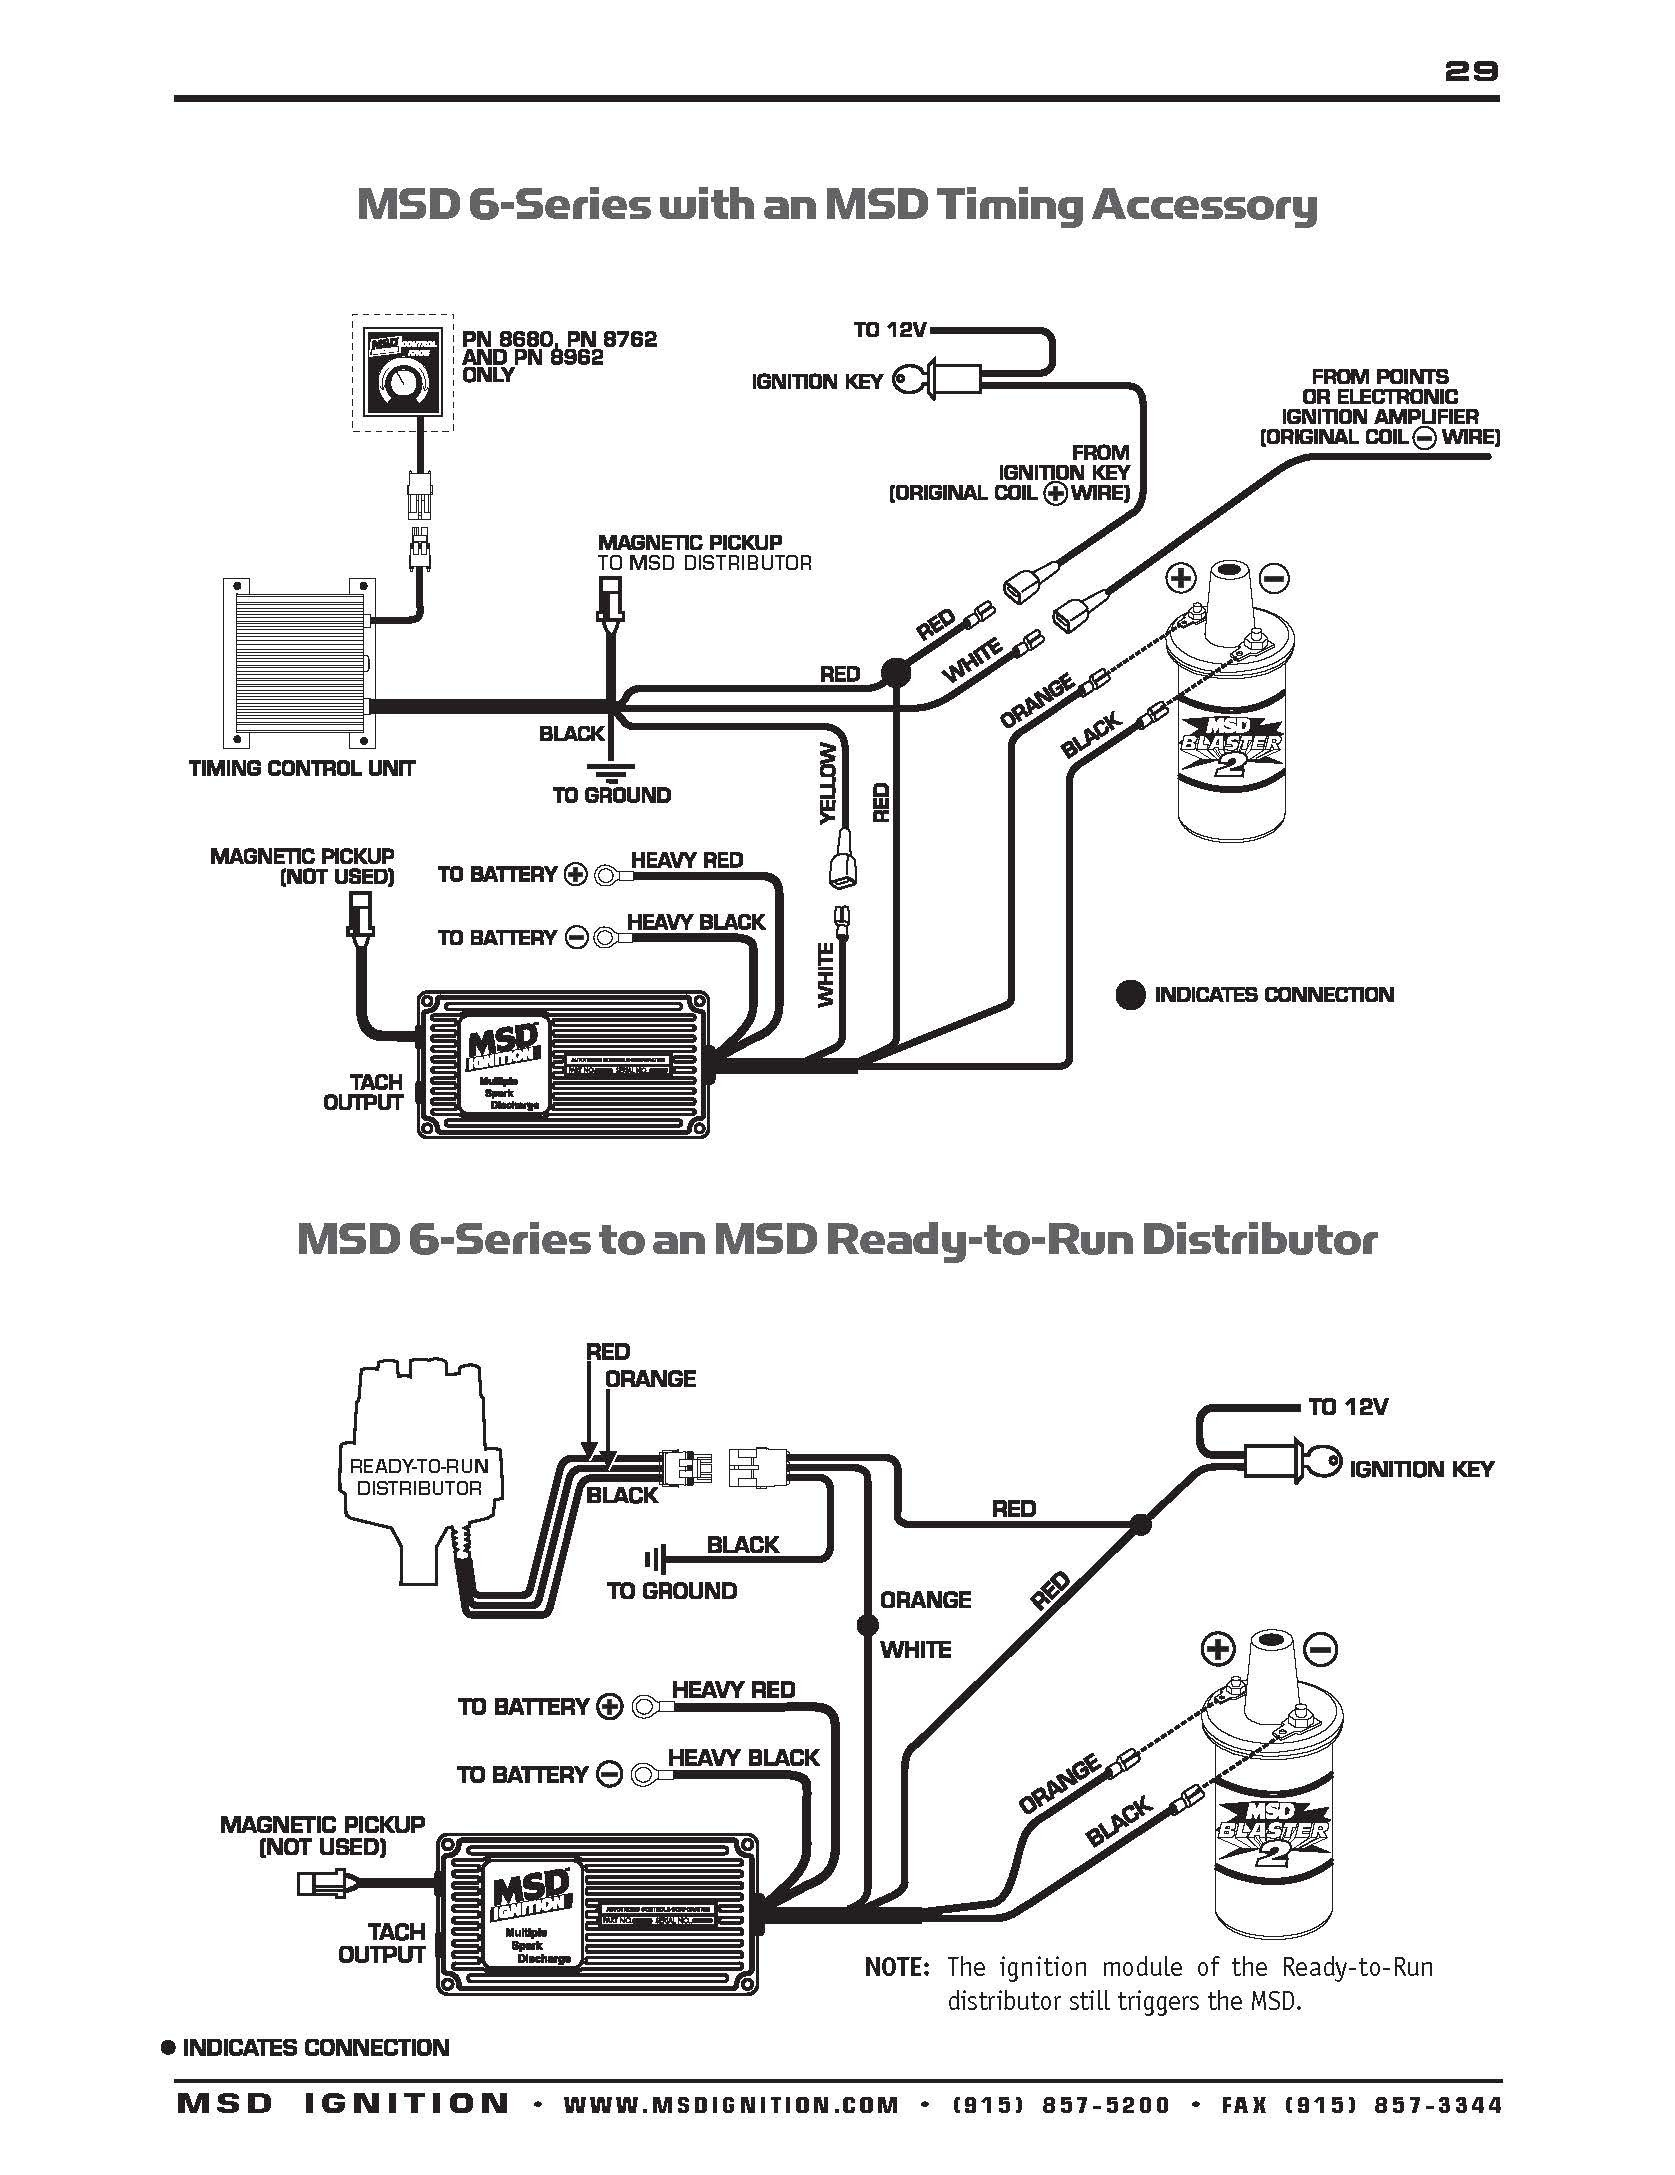 Msd Power Grid Wiring Diagram Free Image About Wiring Diagram And